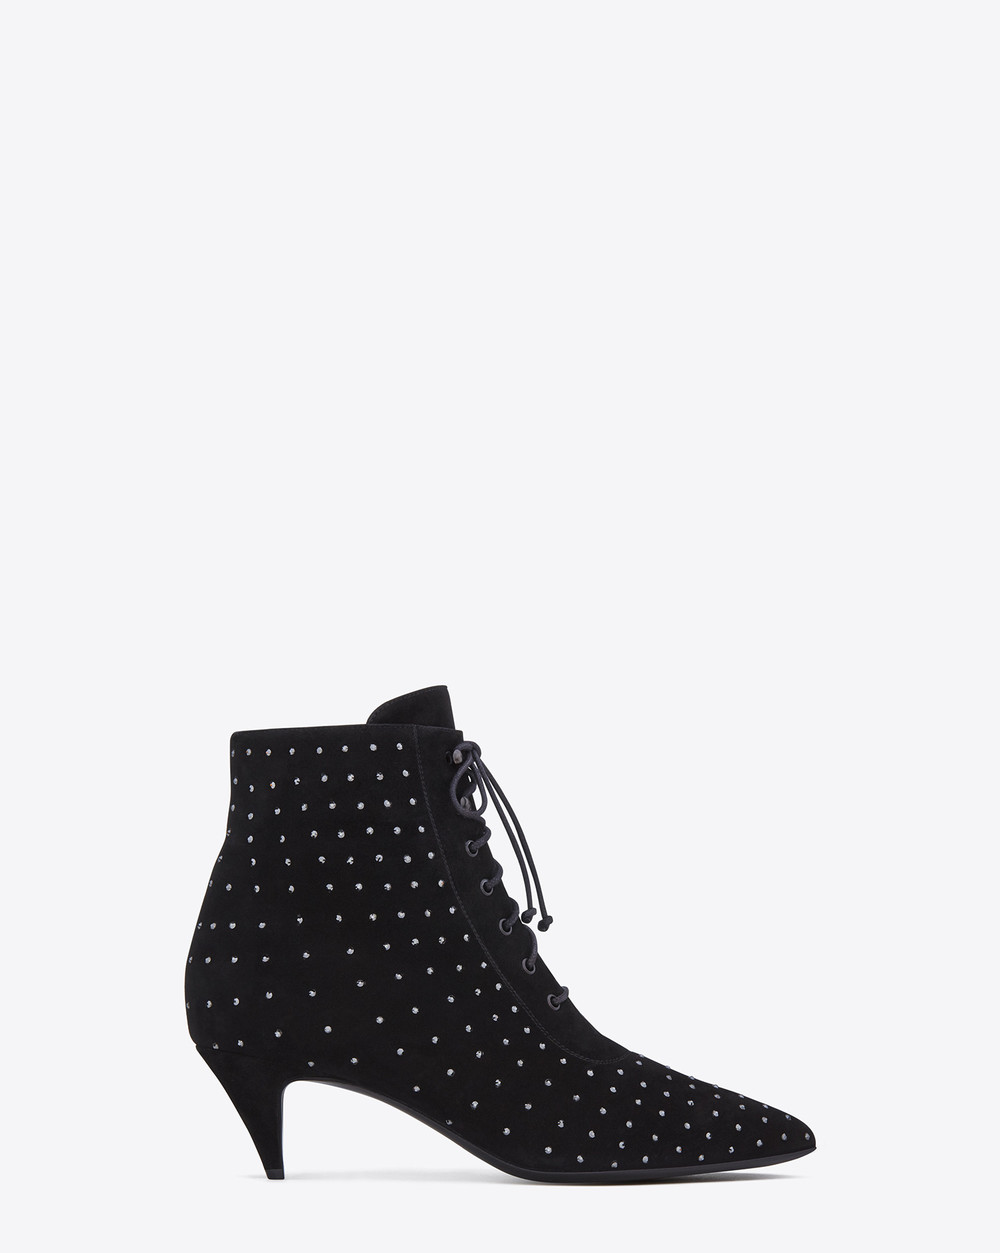 Saint_Laurent_Cat_Boots 03.jpg